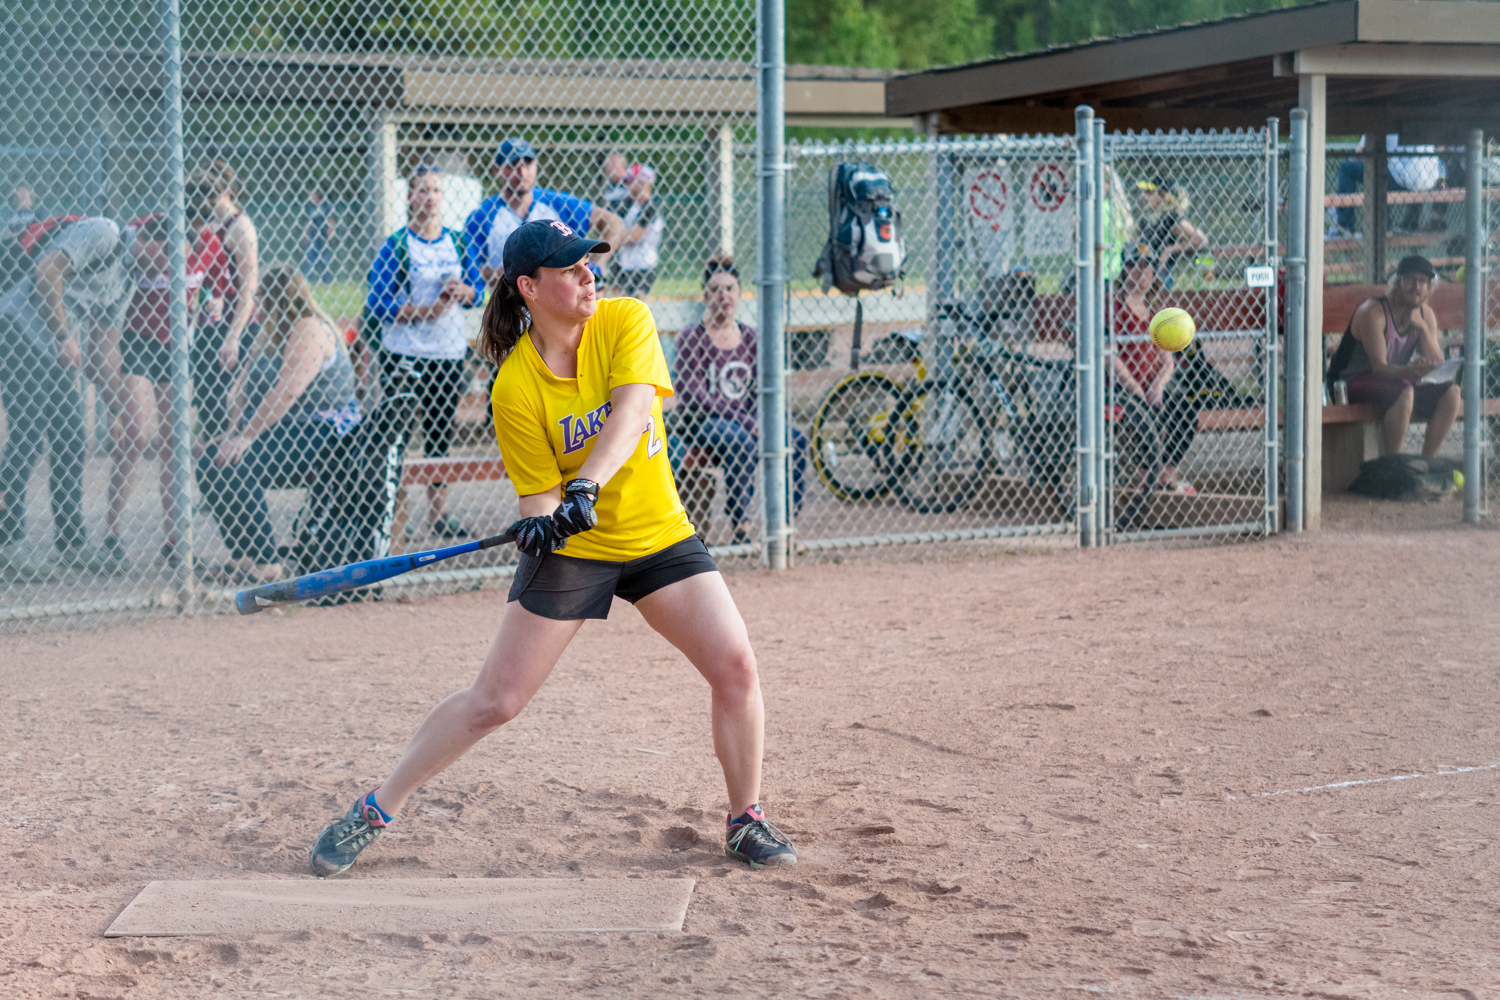 2017 08 22 Softball Playoffs 1-239.jpg